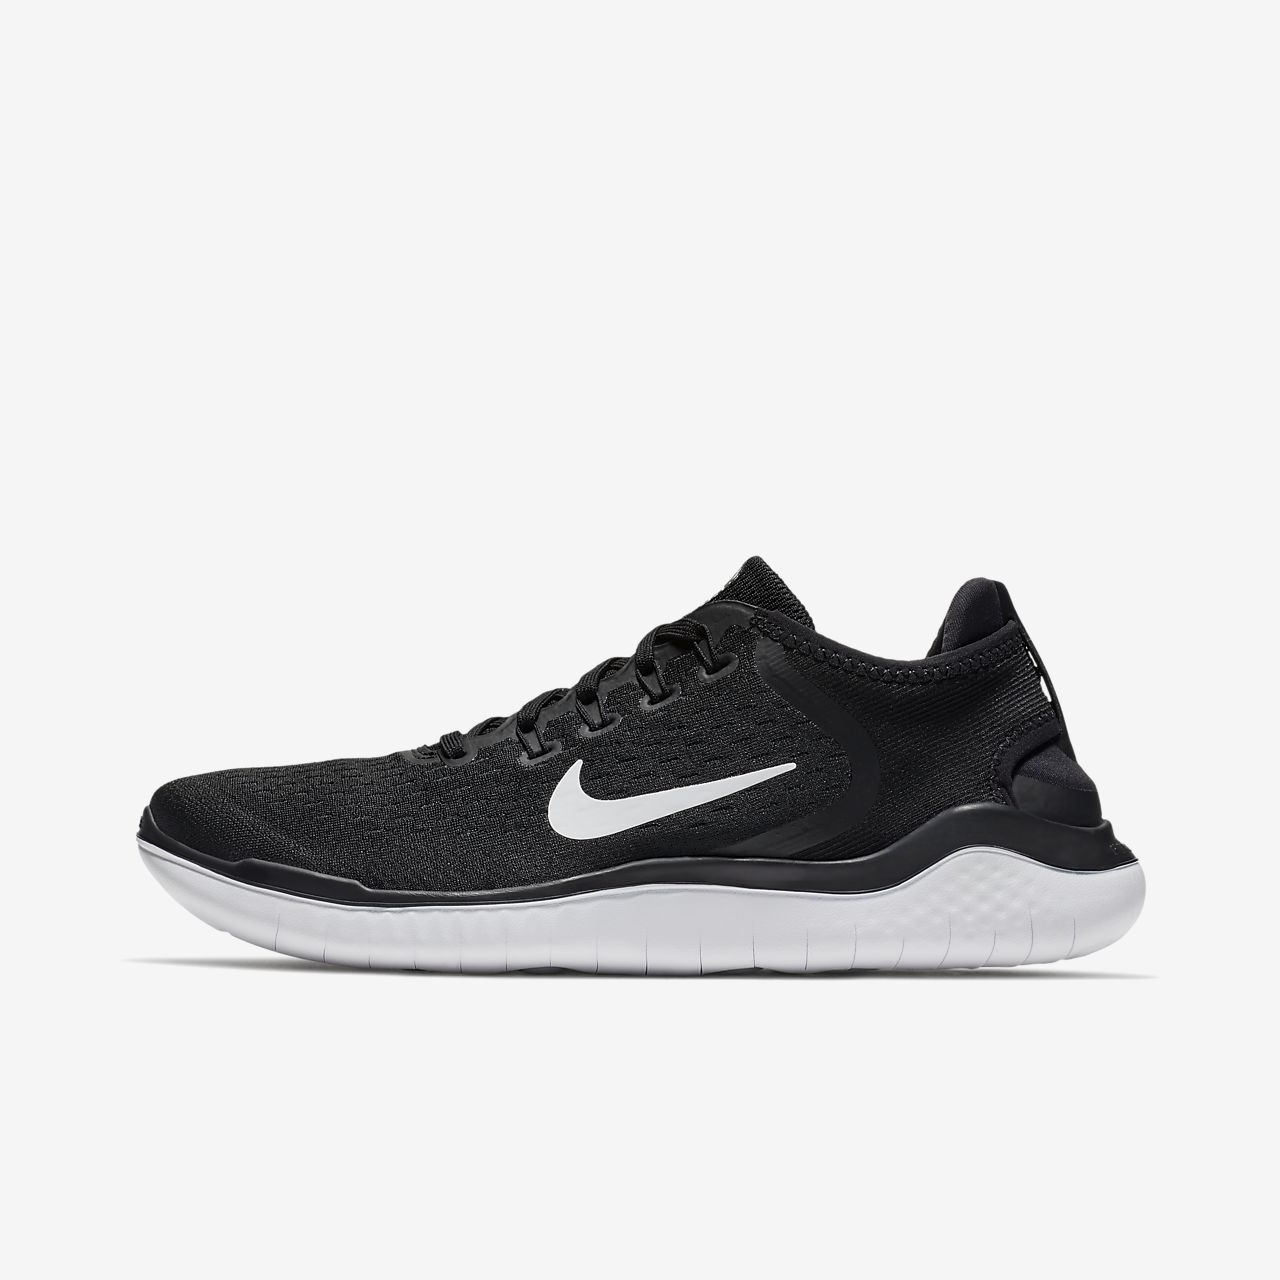 info for 19d80 9e1b2 Men s Running Shoe. Nike Free RN 2018